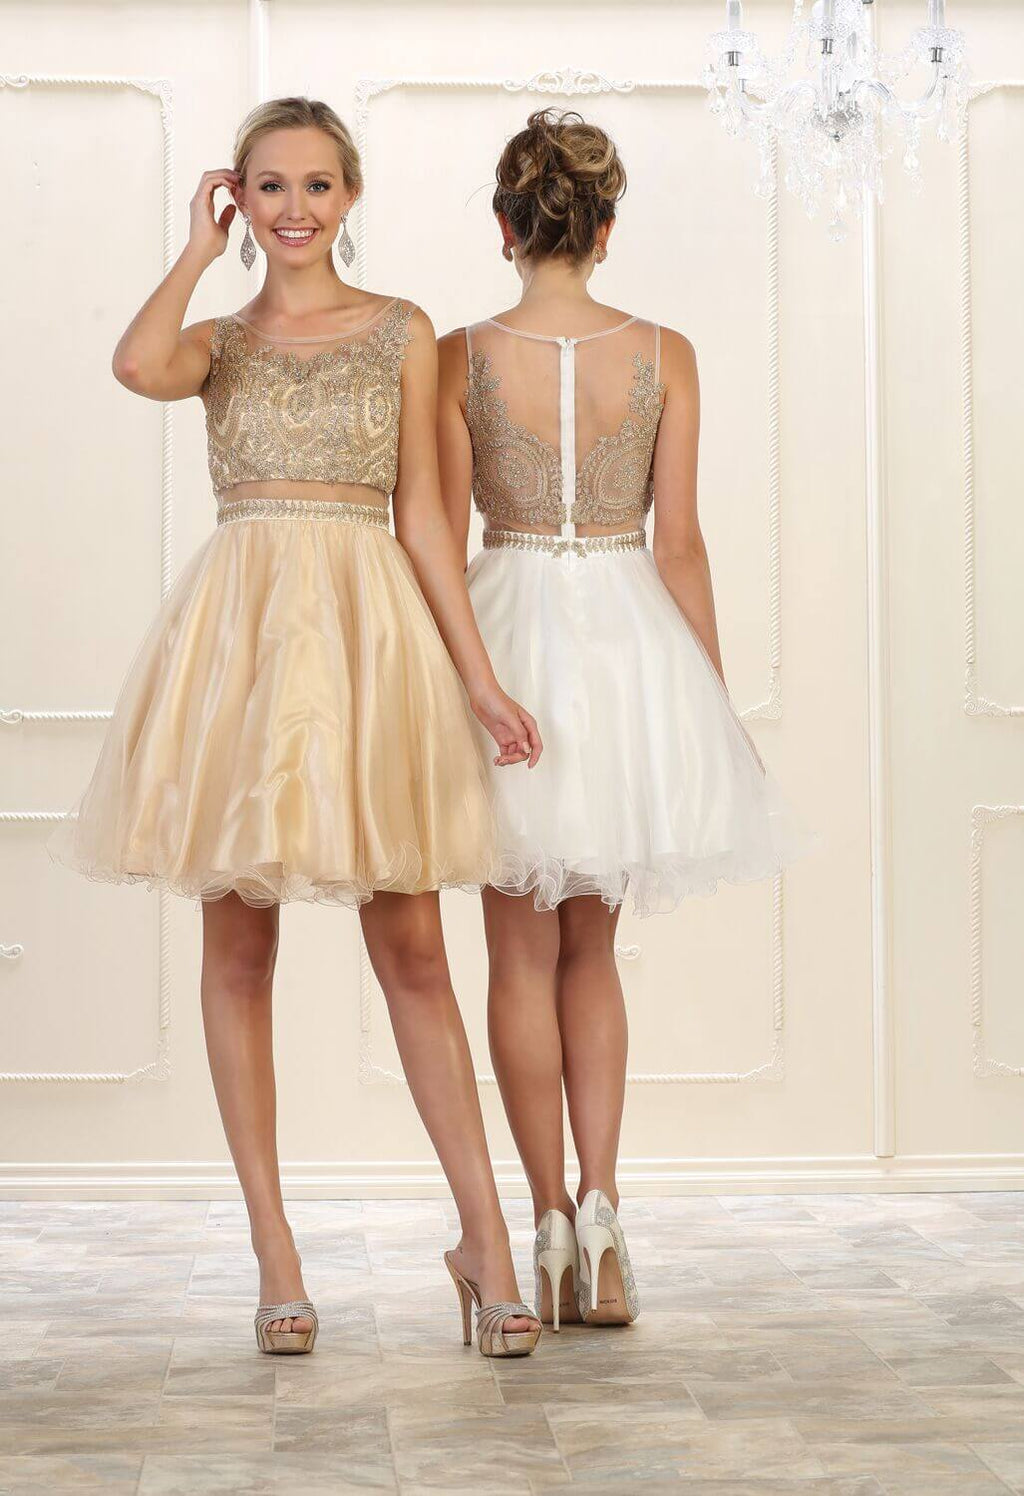 Short Prom Dress Homecoming - The Dress Outlet Ivory/Gold May Queen